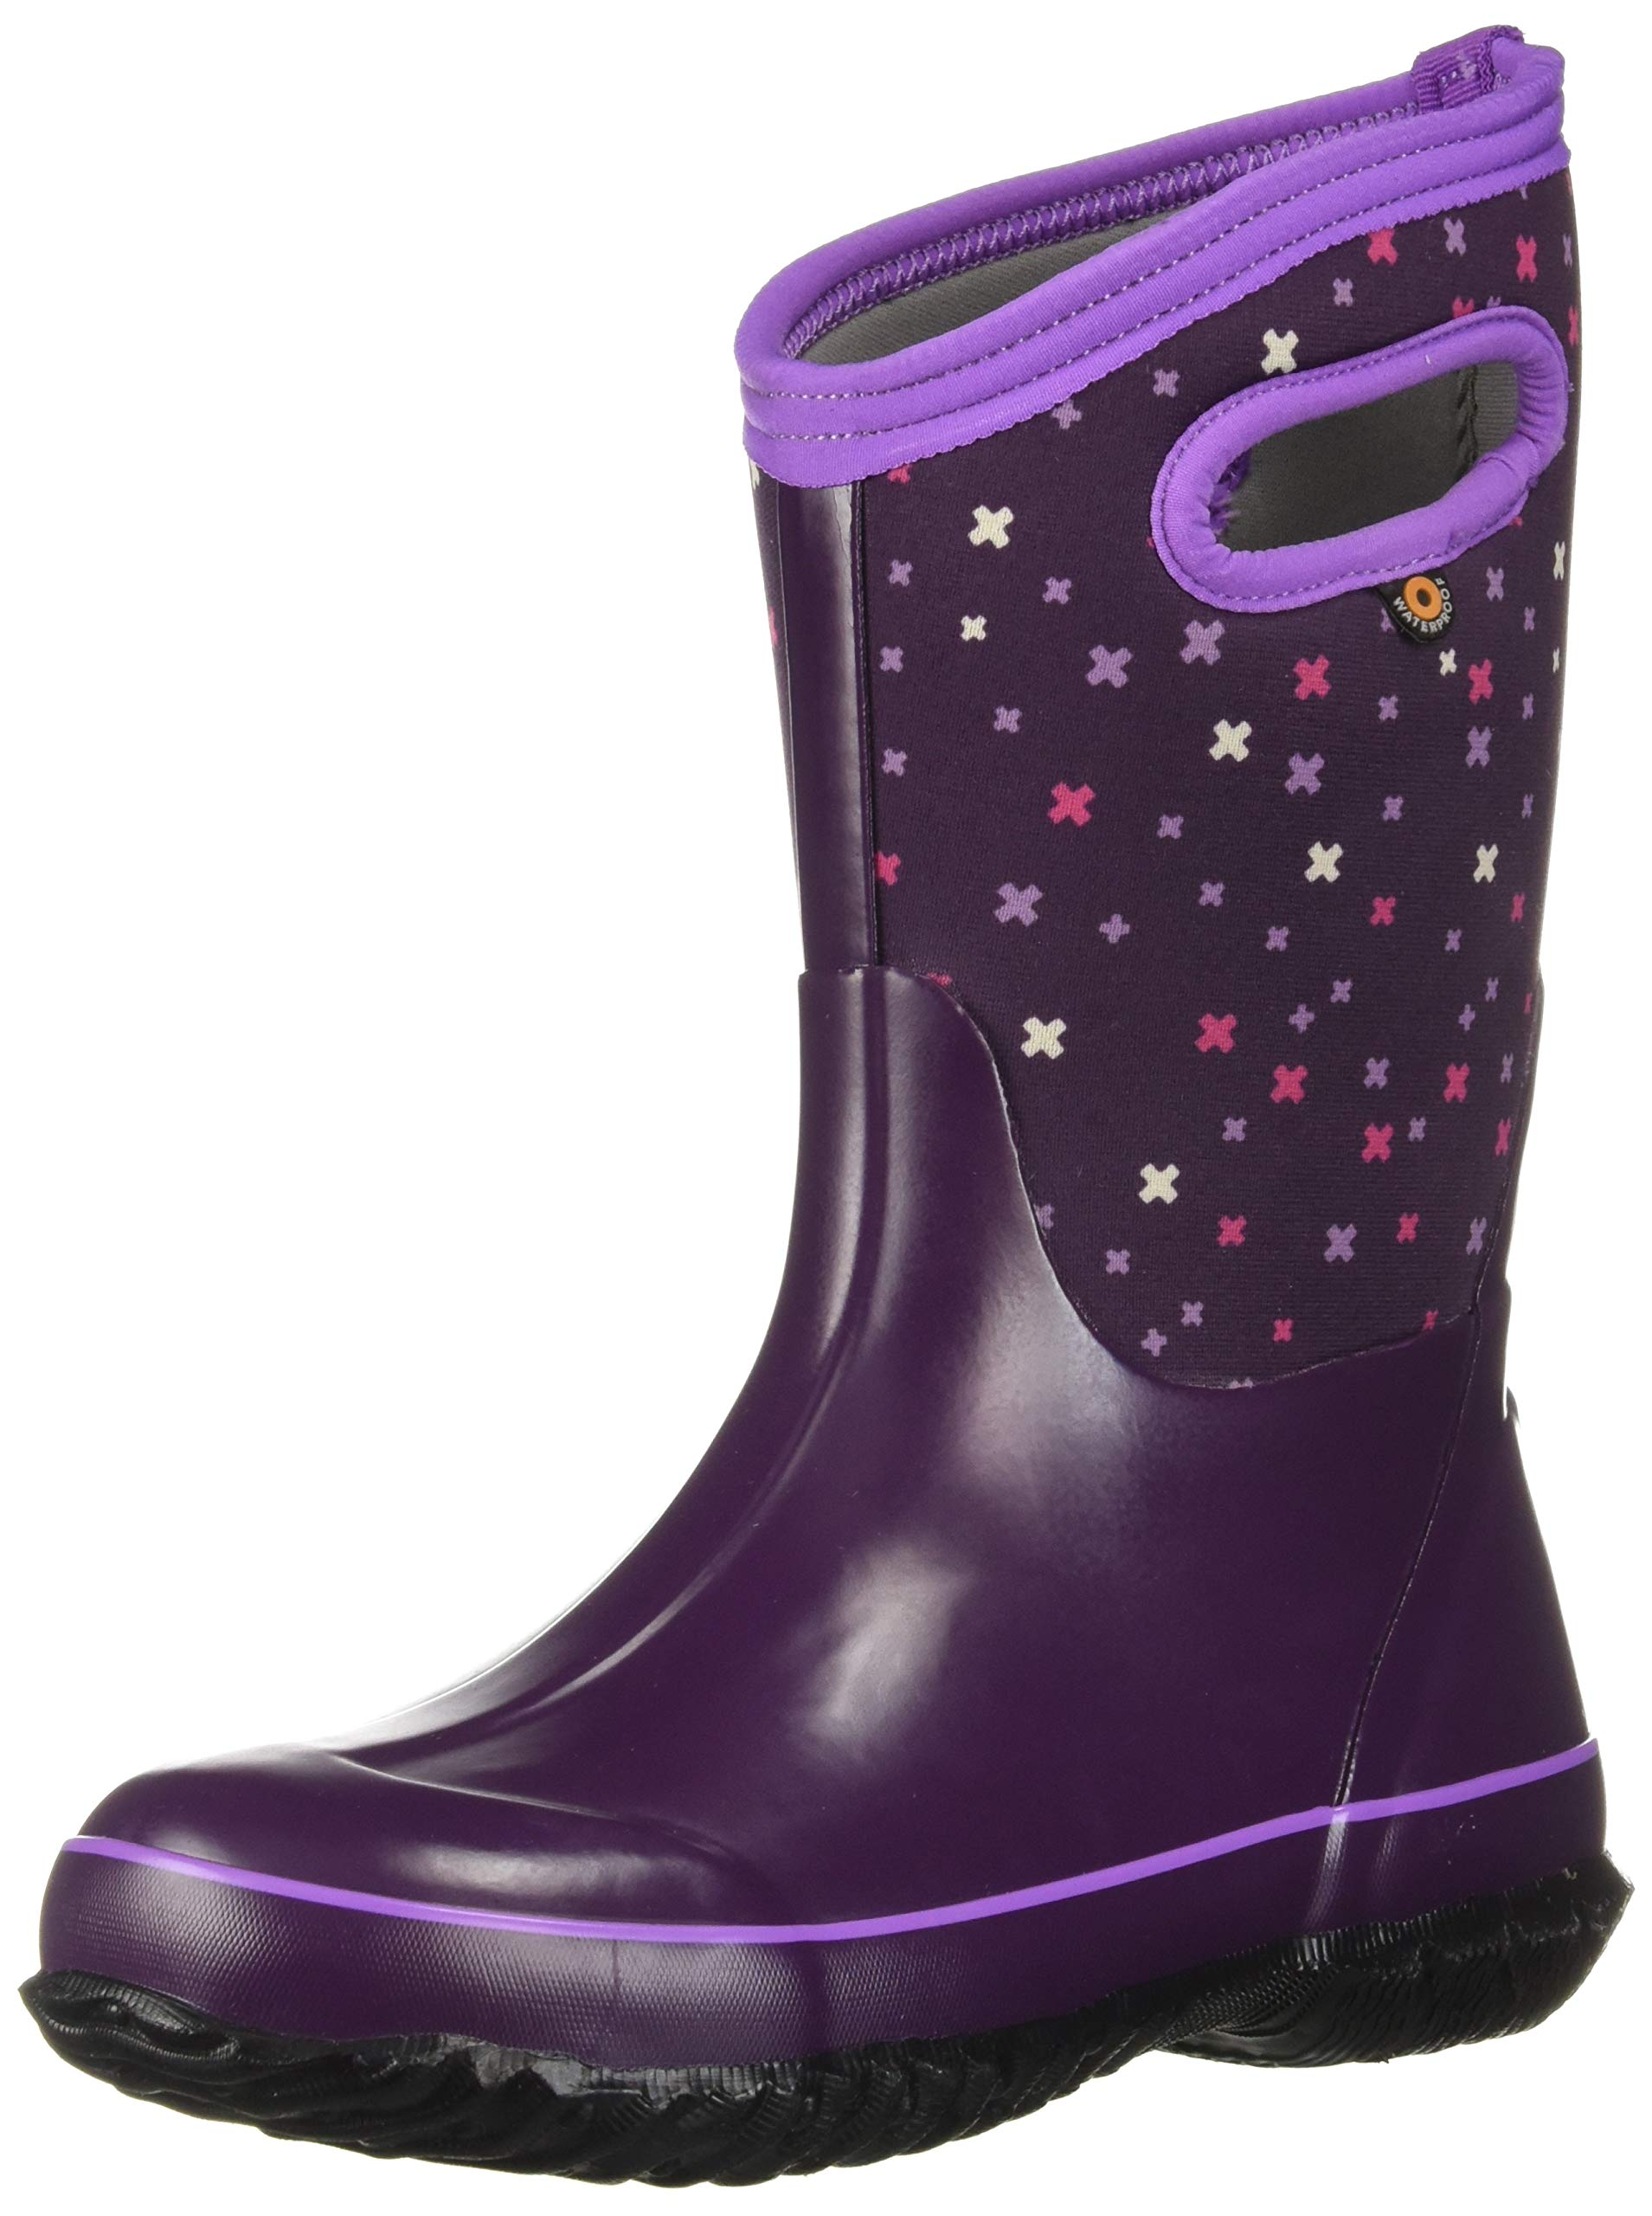 Bogs Kids' Classic High Waterproof Insulated Rubber Neoprene Rain Boot Snow, Plus Eggplant Multi 7 M US Toddler